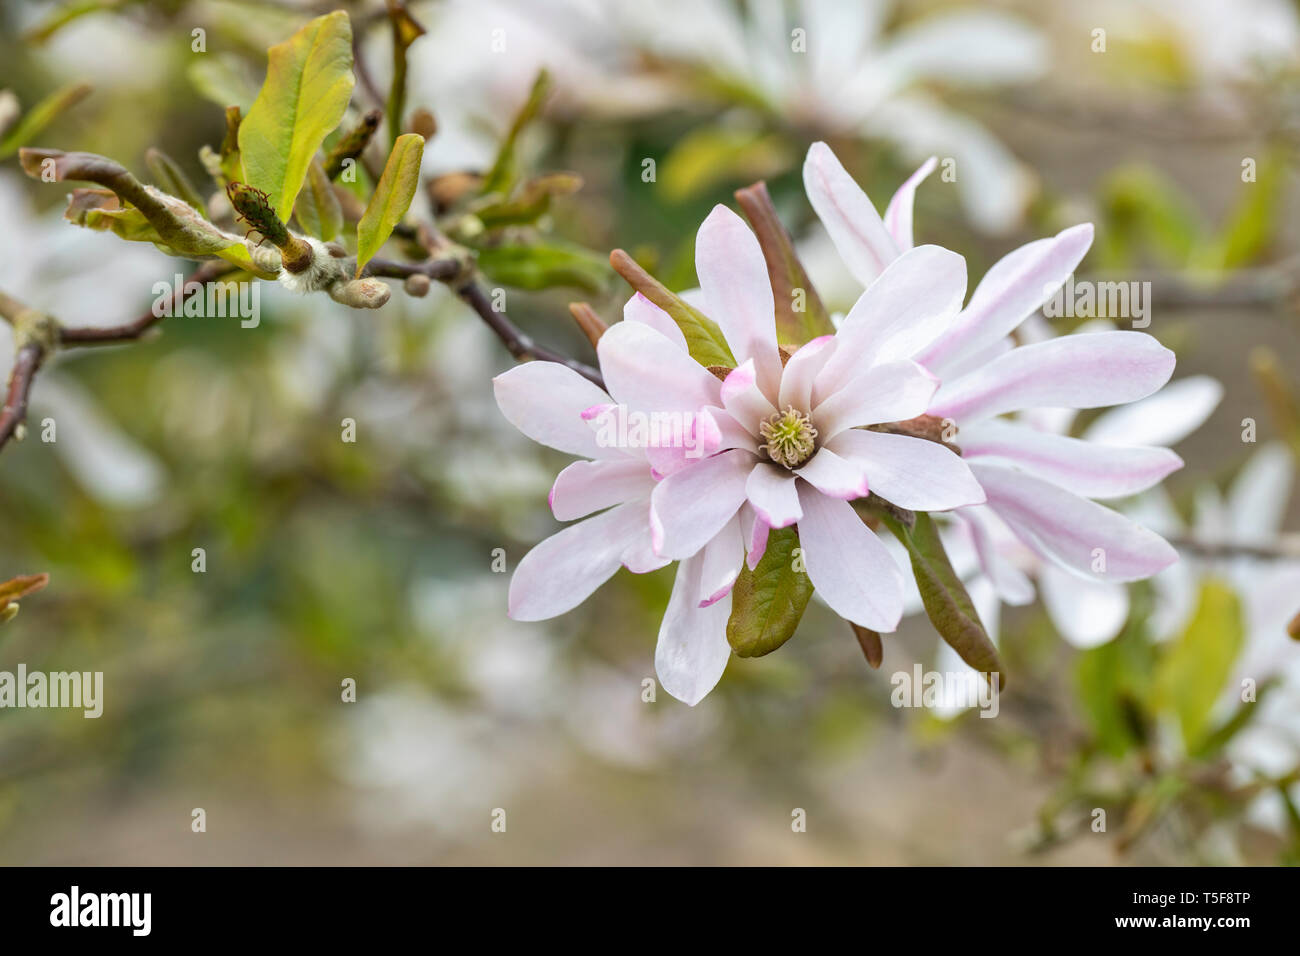 Close up of the flower of Magnolia x loebneri - Leonard Messel in April against a blurred background Stock Photo